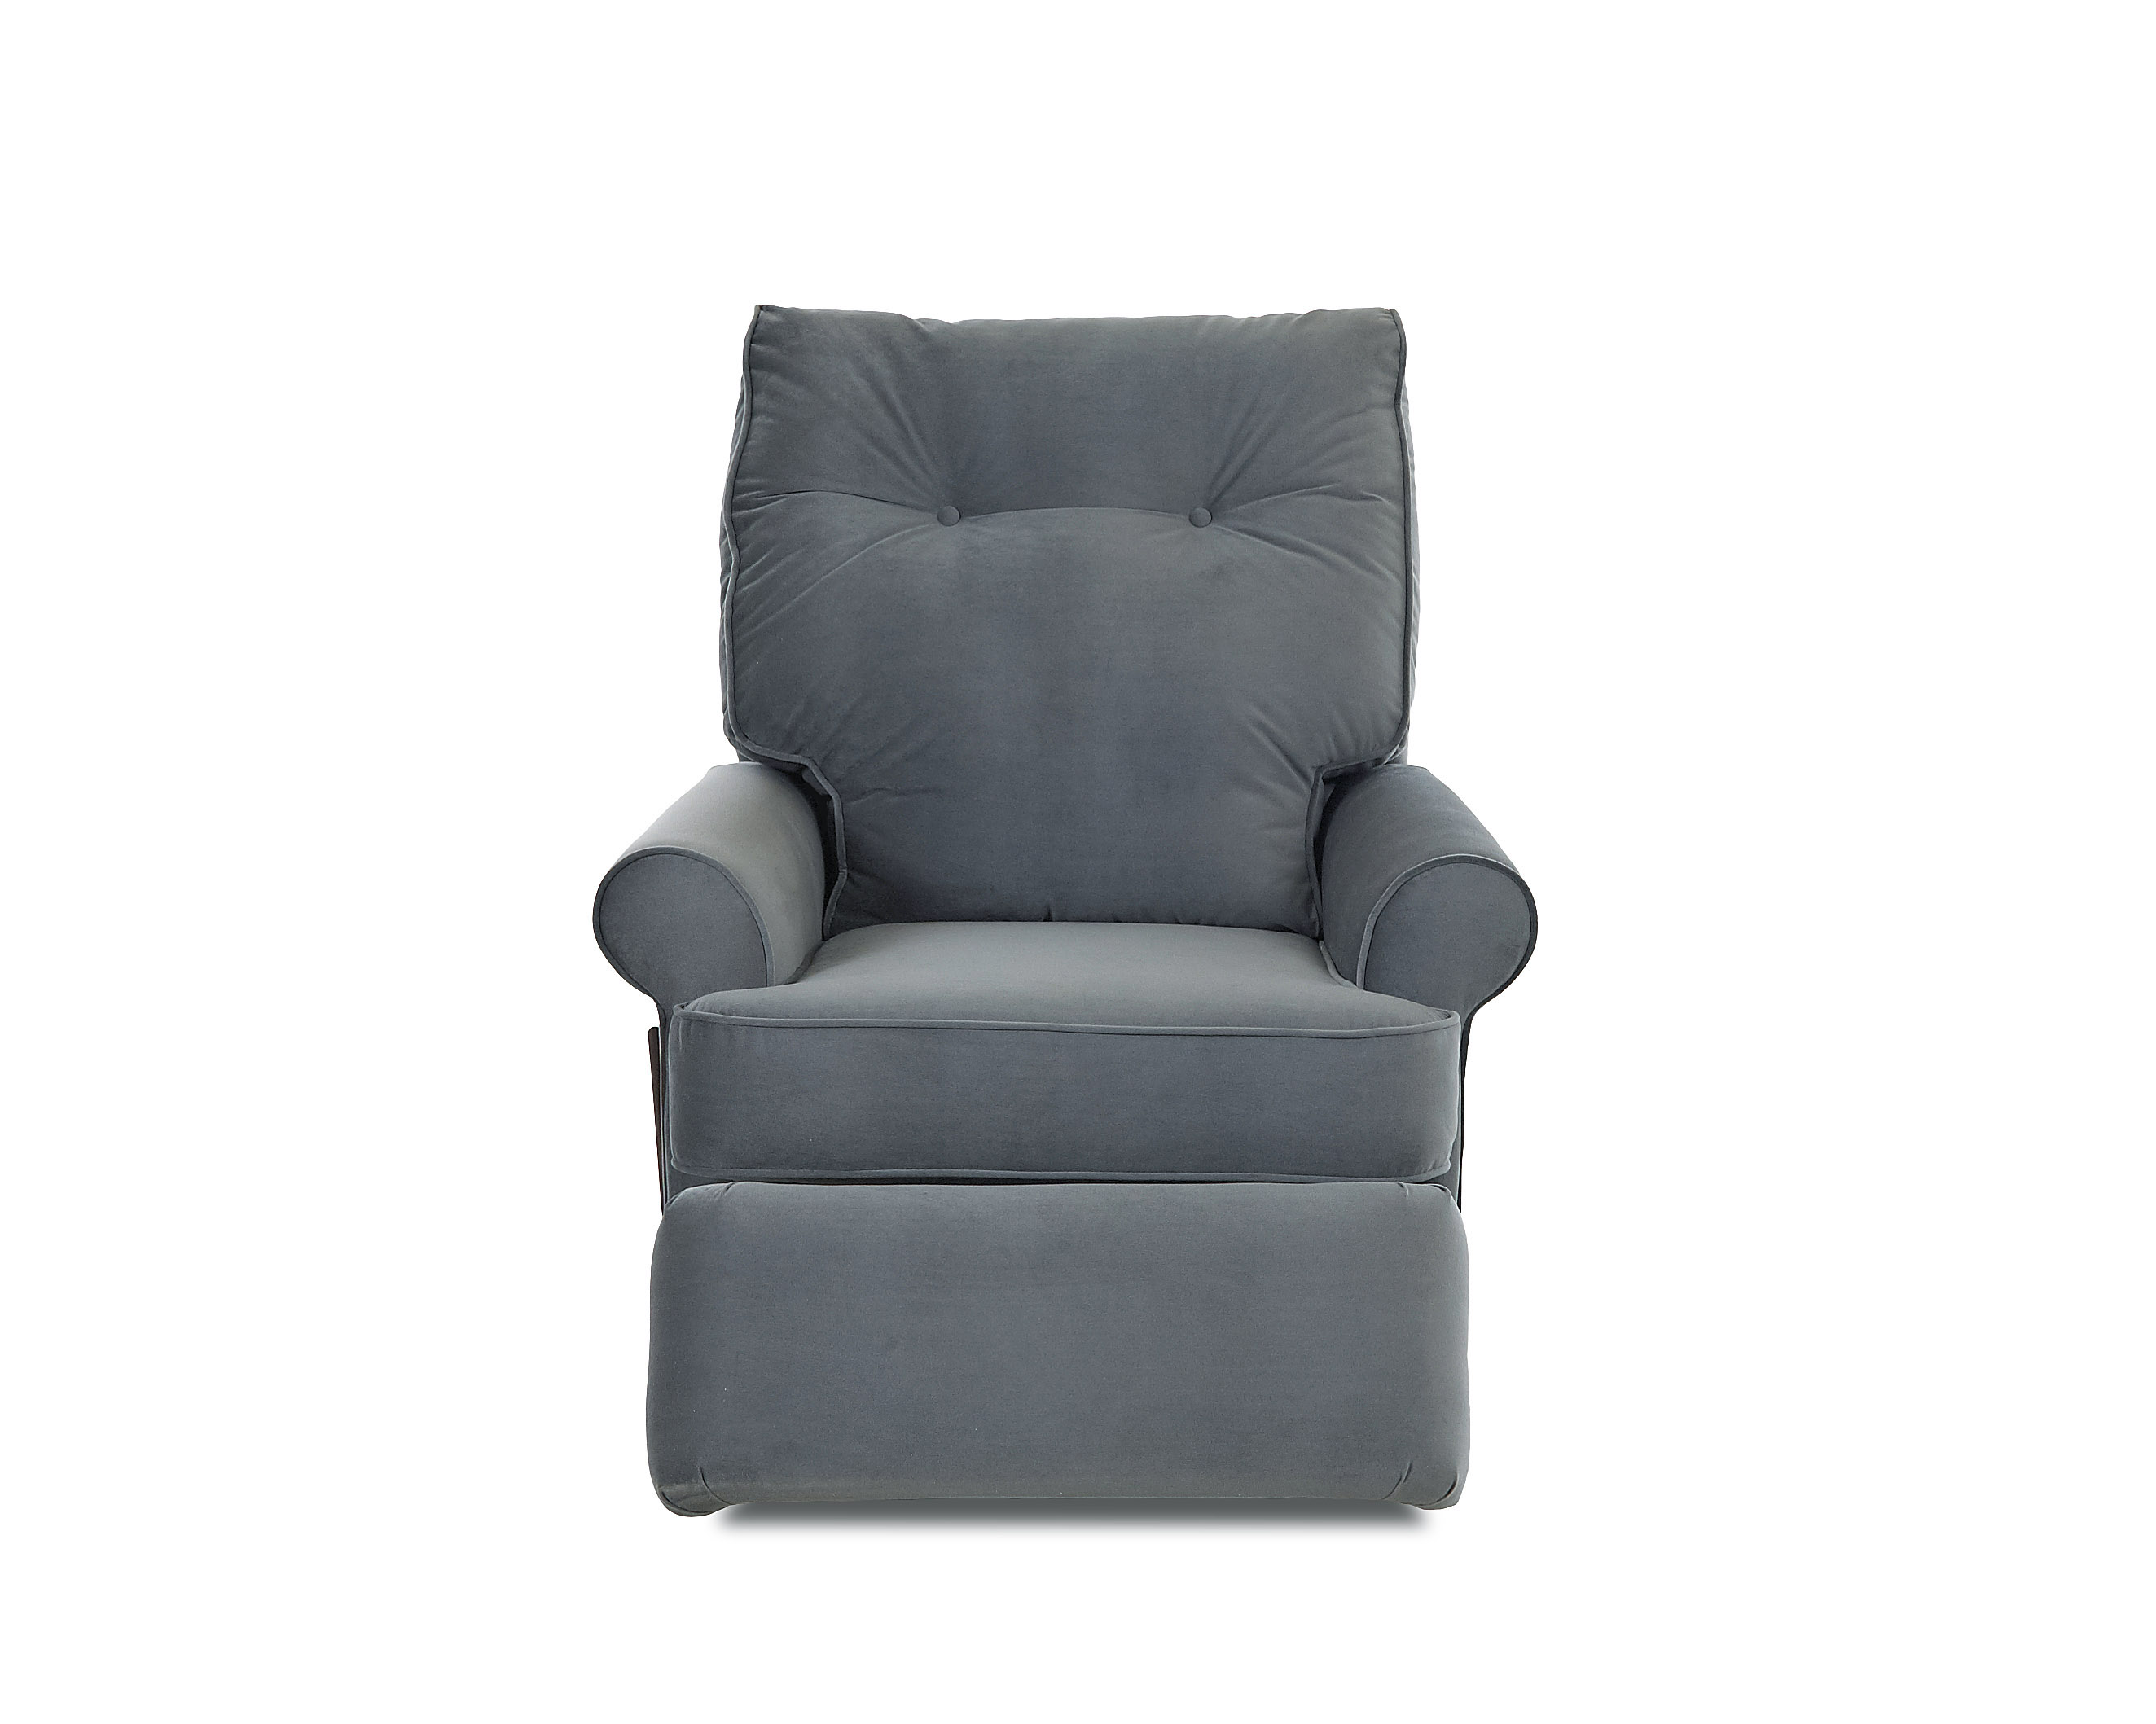 Klaussner Power Recliner Sale Price Delivery